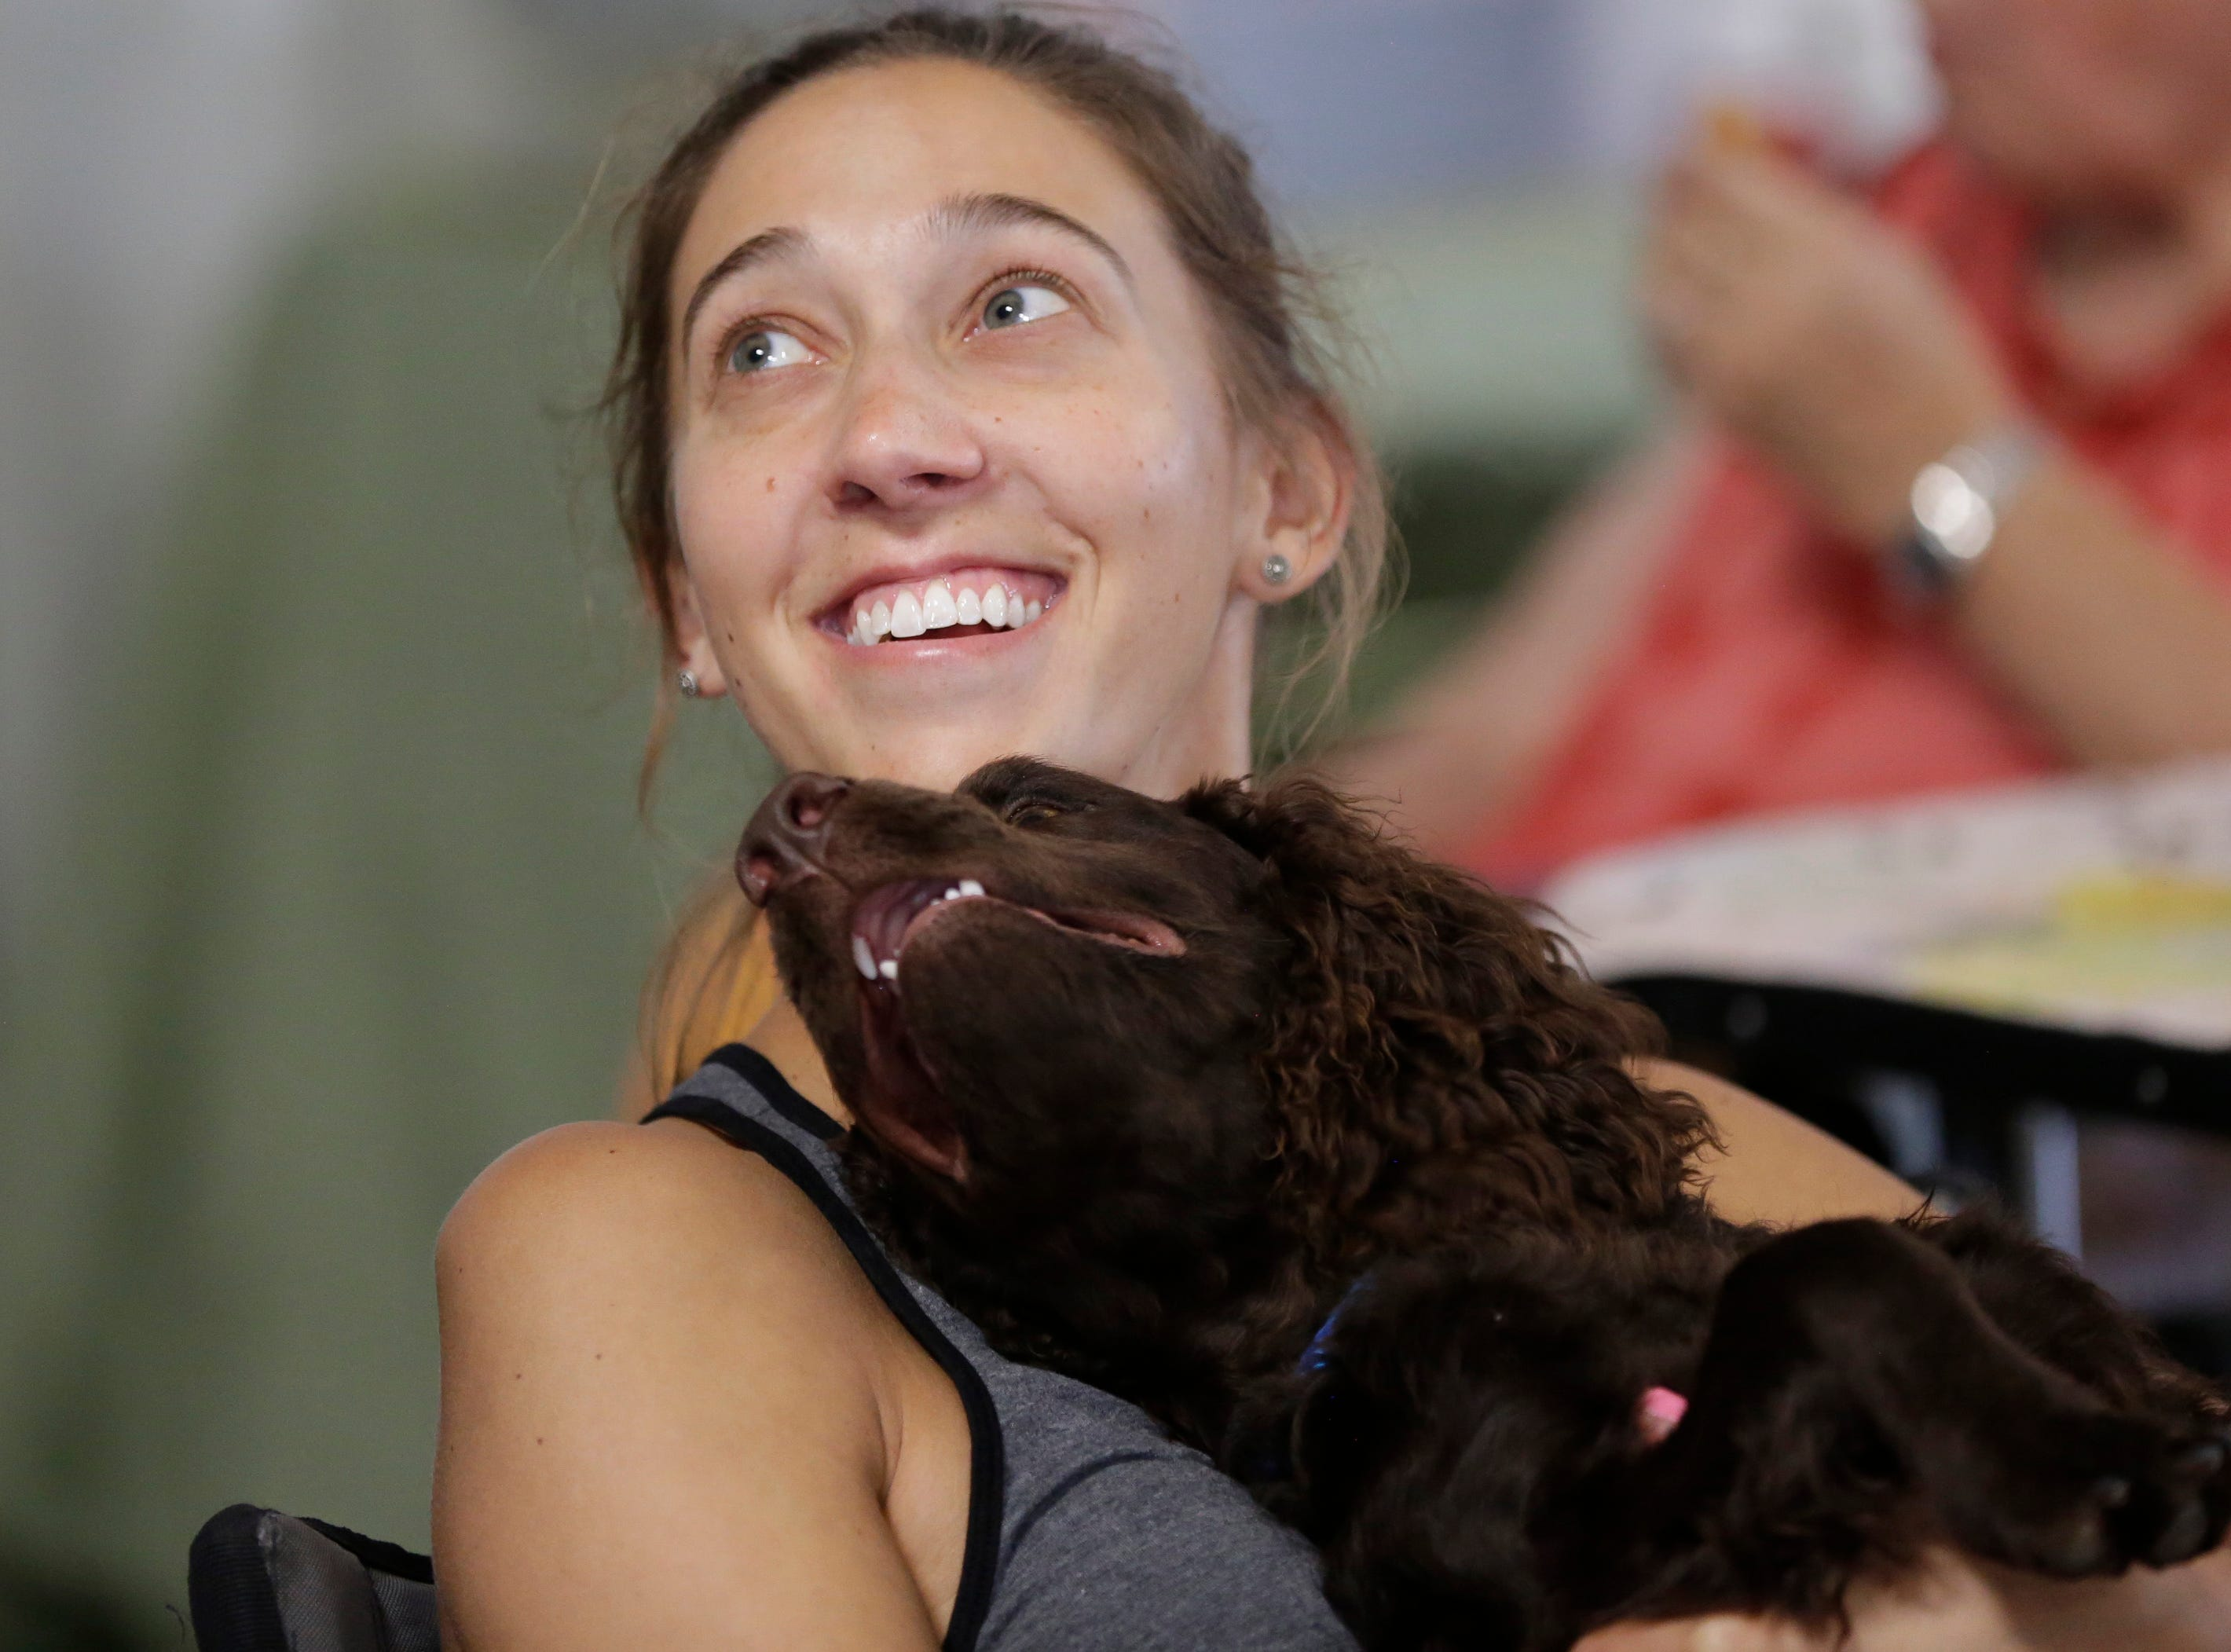 Bree Dravees cuddles with her American water spaniel Indee during the Marshfield Area Kennel Club's All-Breed Dog Show, Obedience Trials and Rally Trials at the Central Wisconsin Fairgrounds in Marshfield Saturday, August 18, 2018.